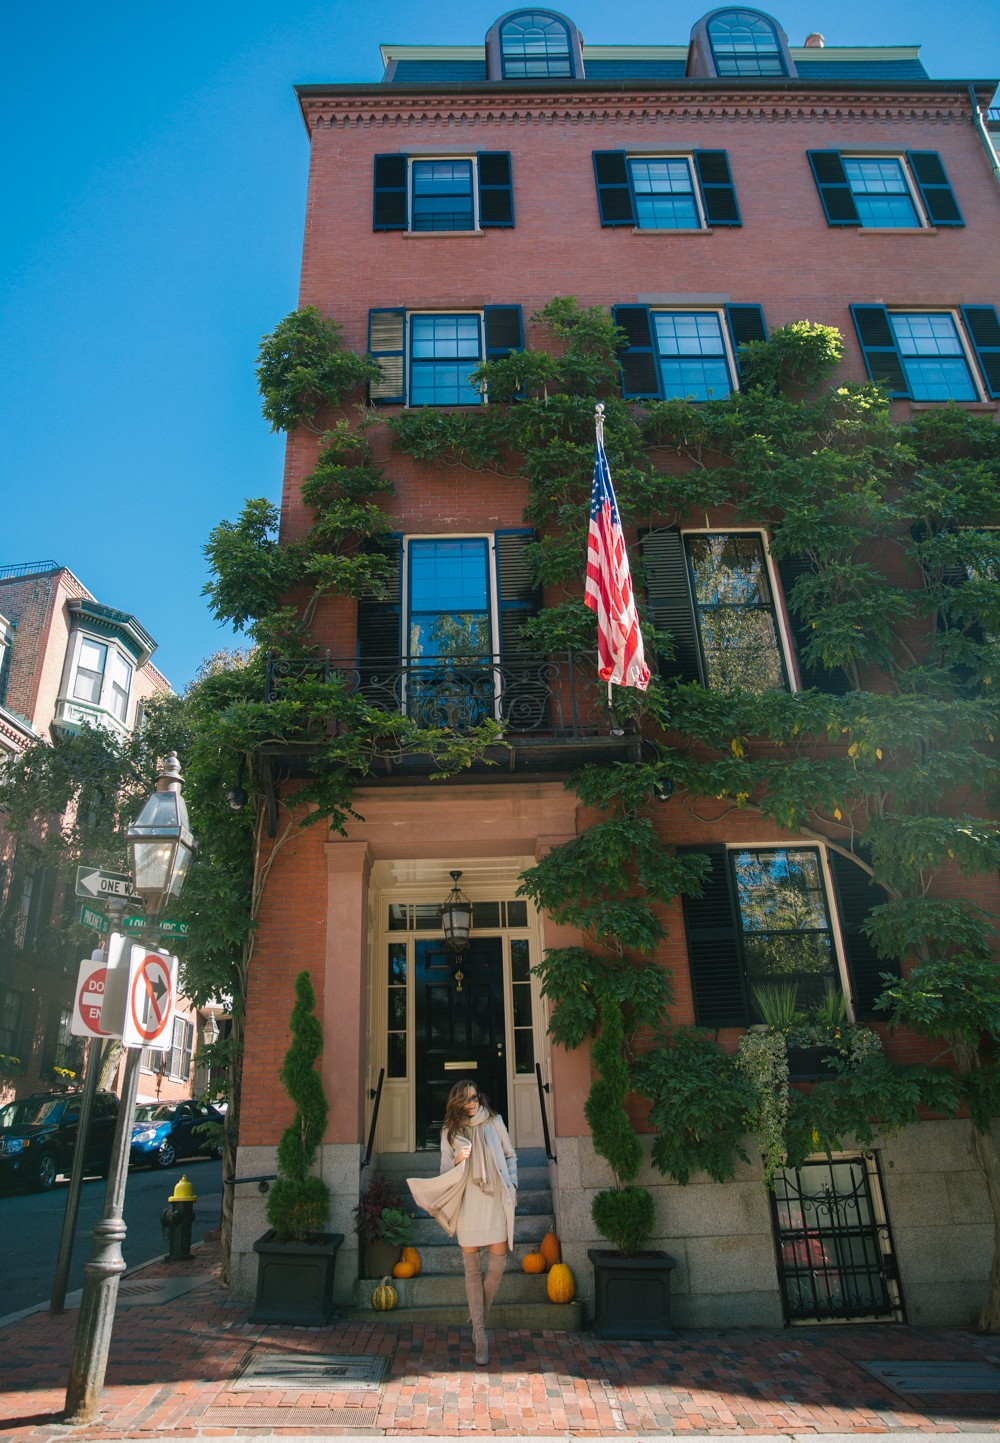 Beacon Hill, Boston - The prettiest townhouses and little streets